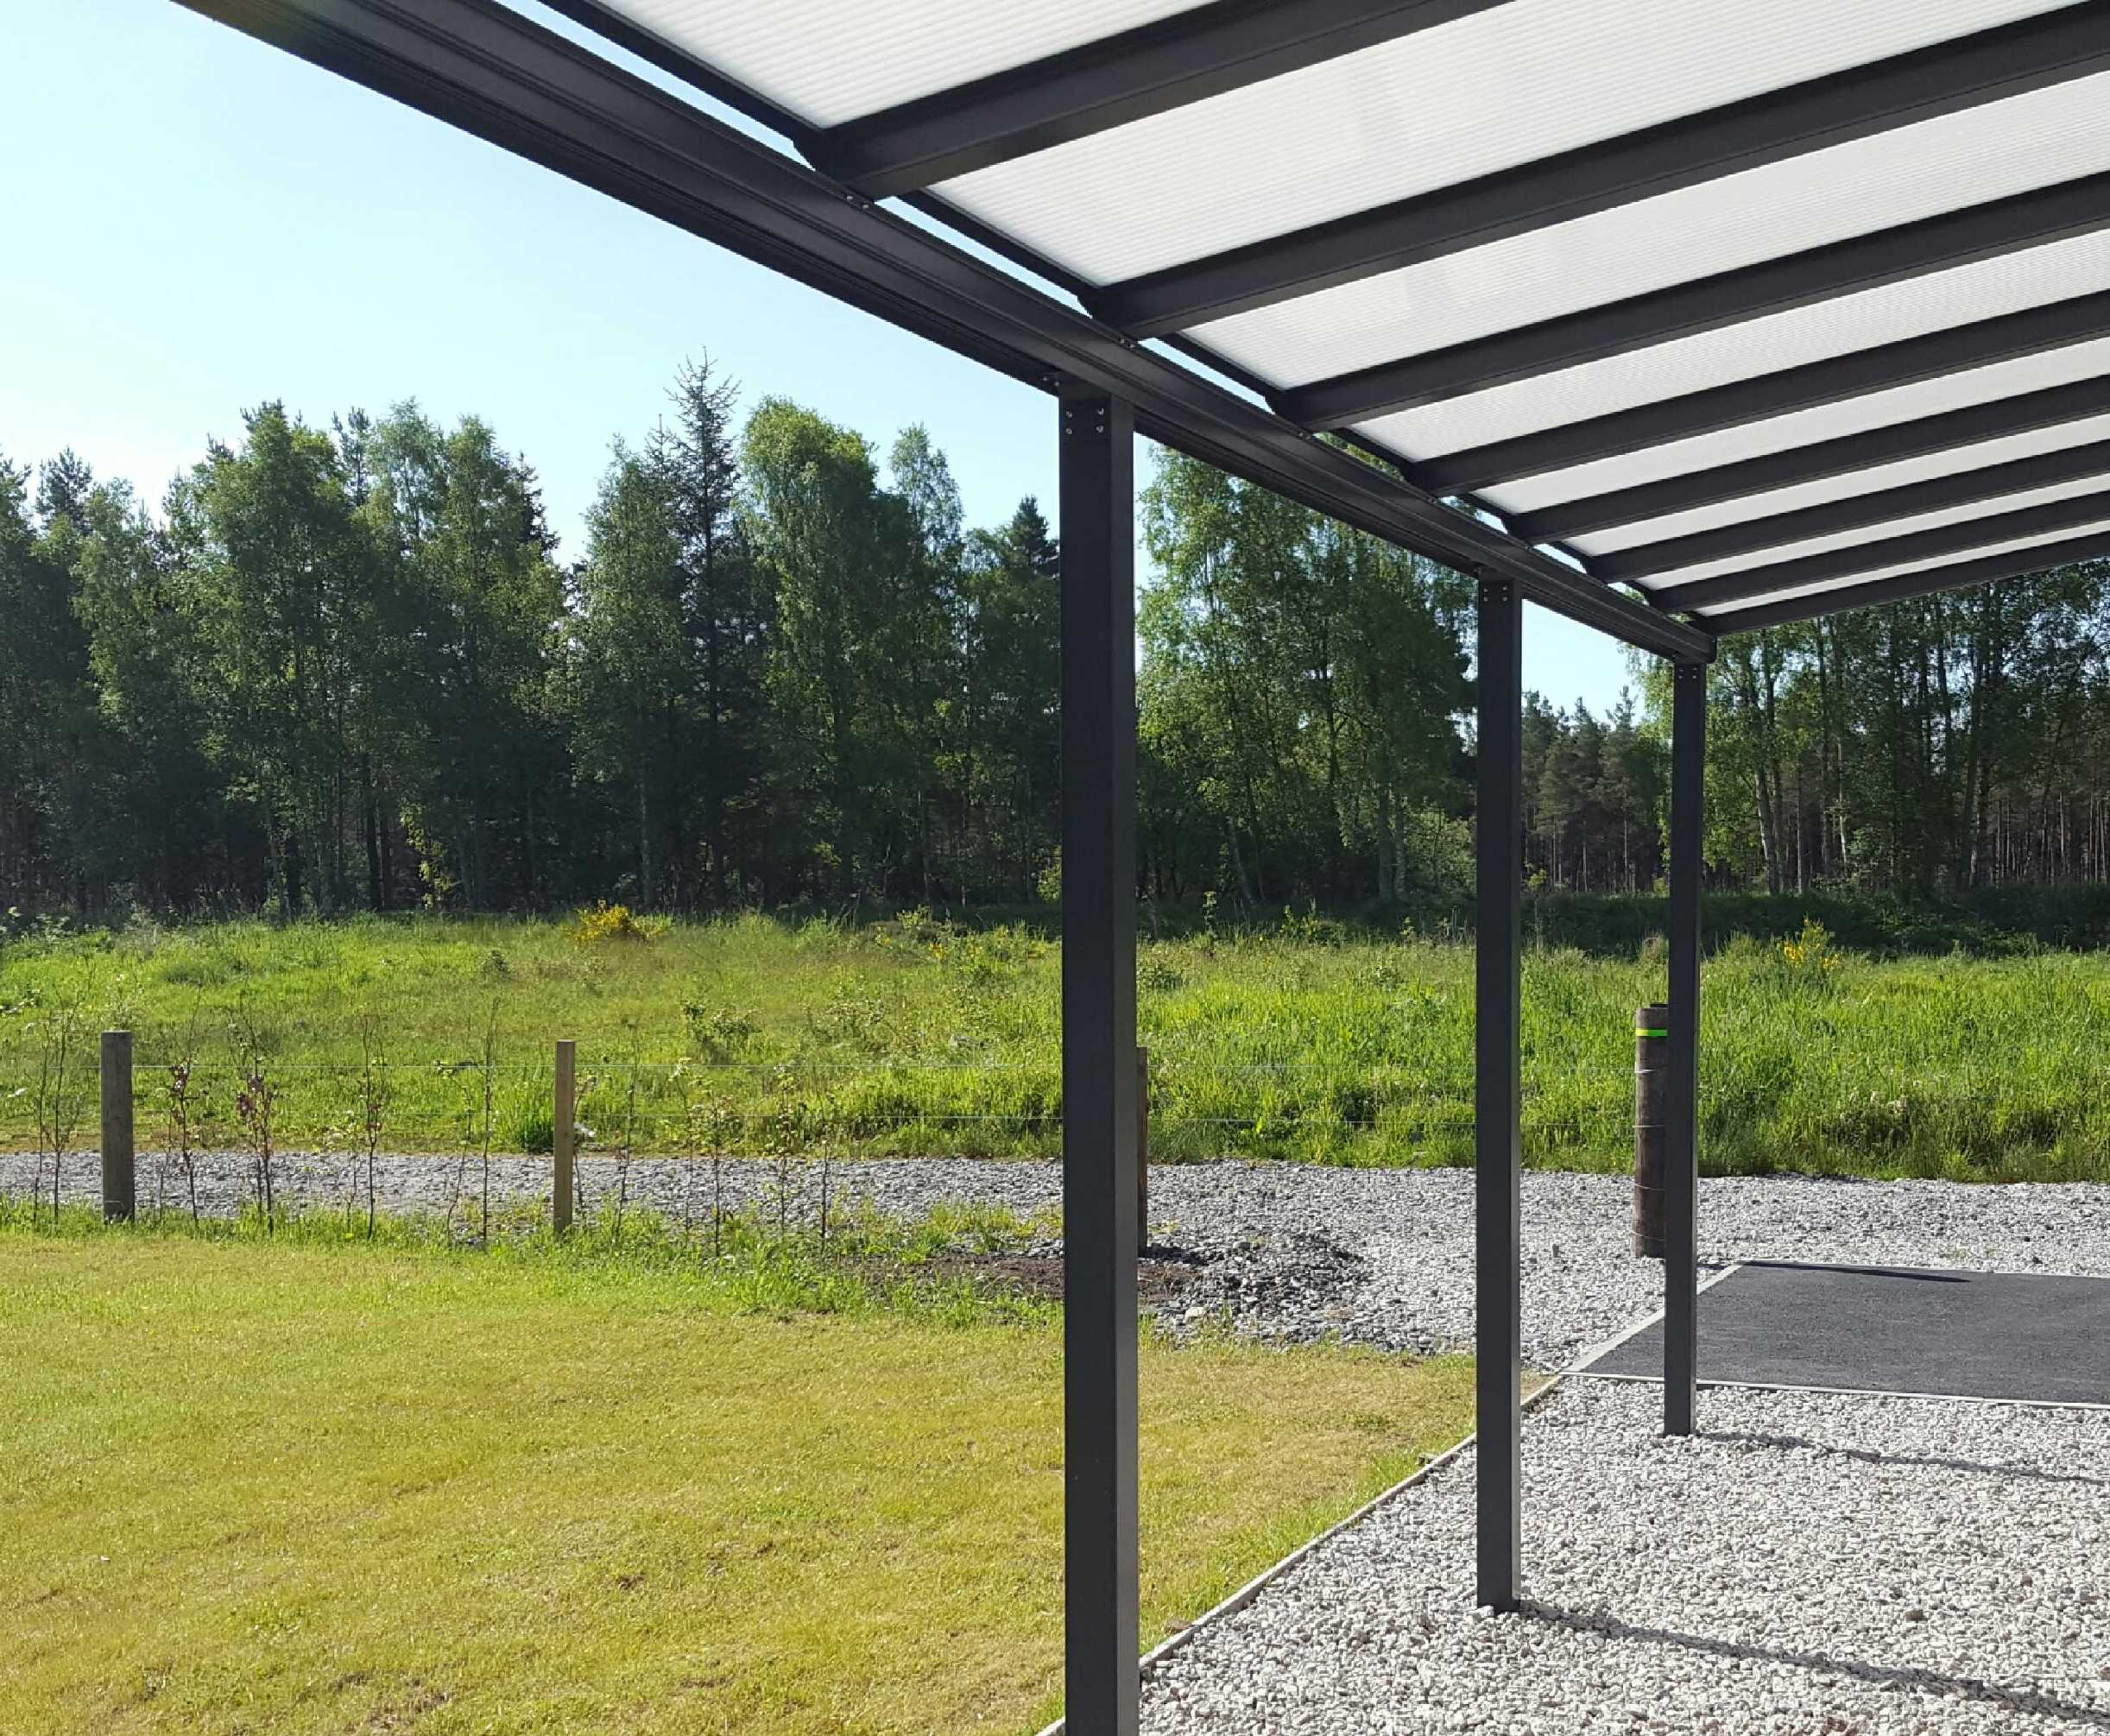 Omega Smart Lean-To Canopy, Anthracite Grey, 16mm Polycarbonate Glazing - 2.1m (W) x 2.5m (P), (2) Supporting Posts